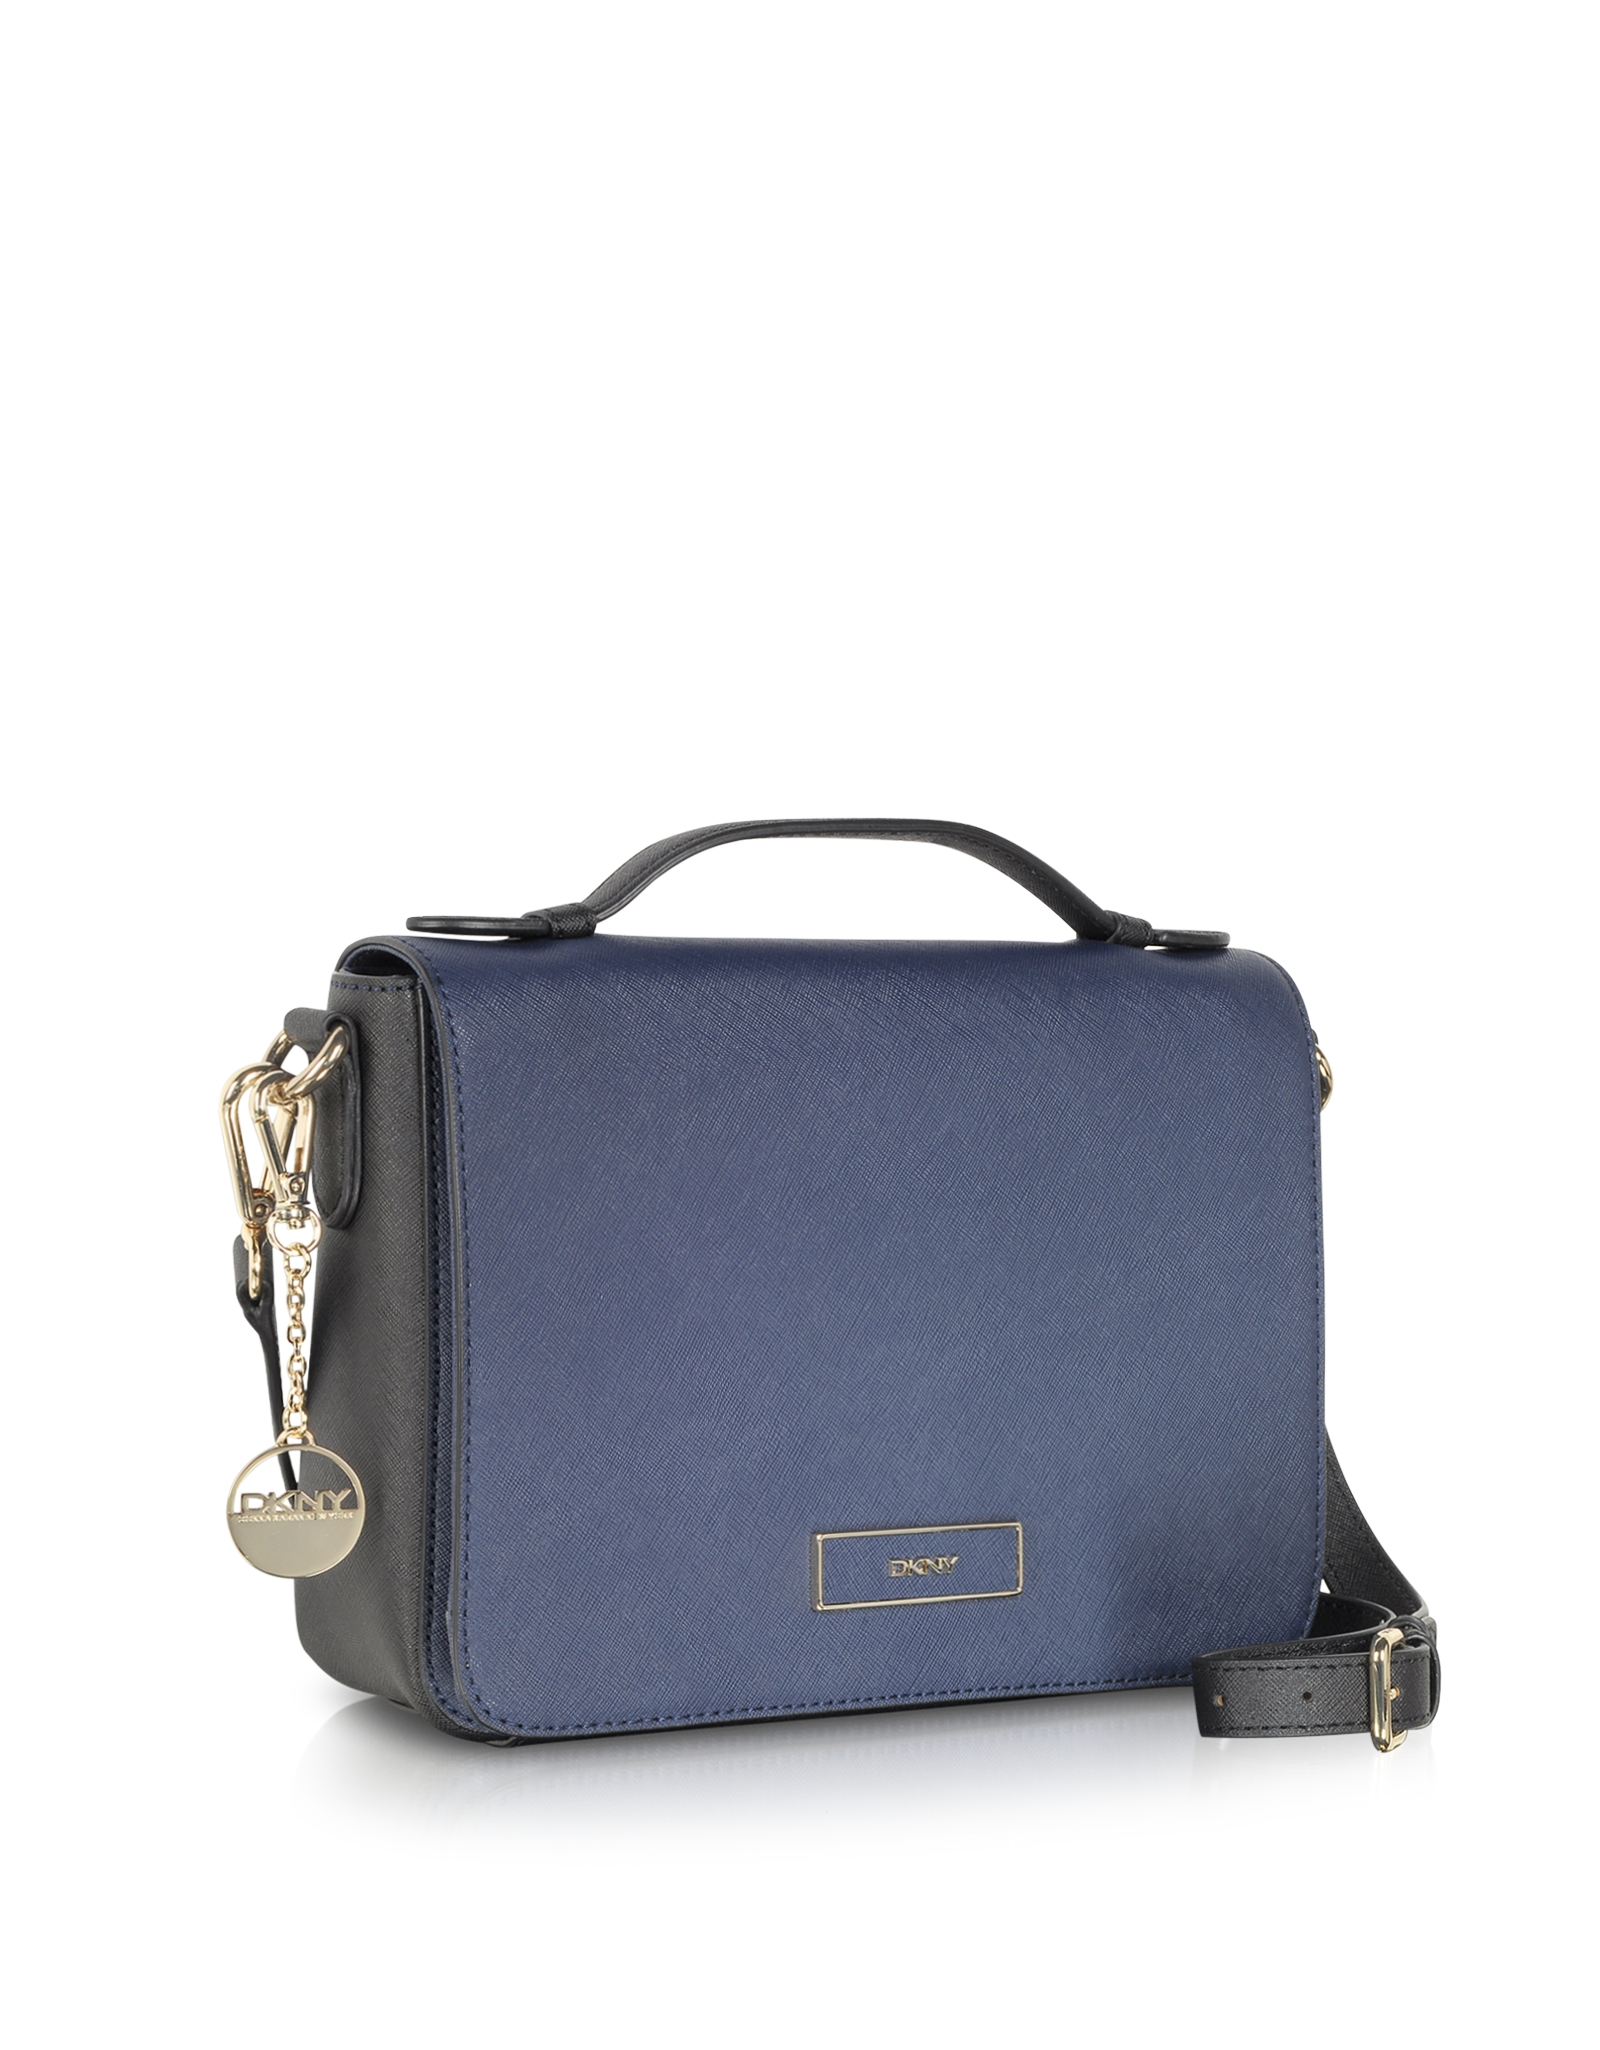 Dkny Color Block Saffiano Leather Flap Shoulder Bag in Blue | Lyst